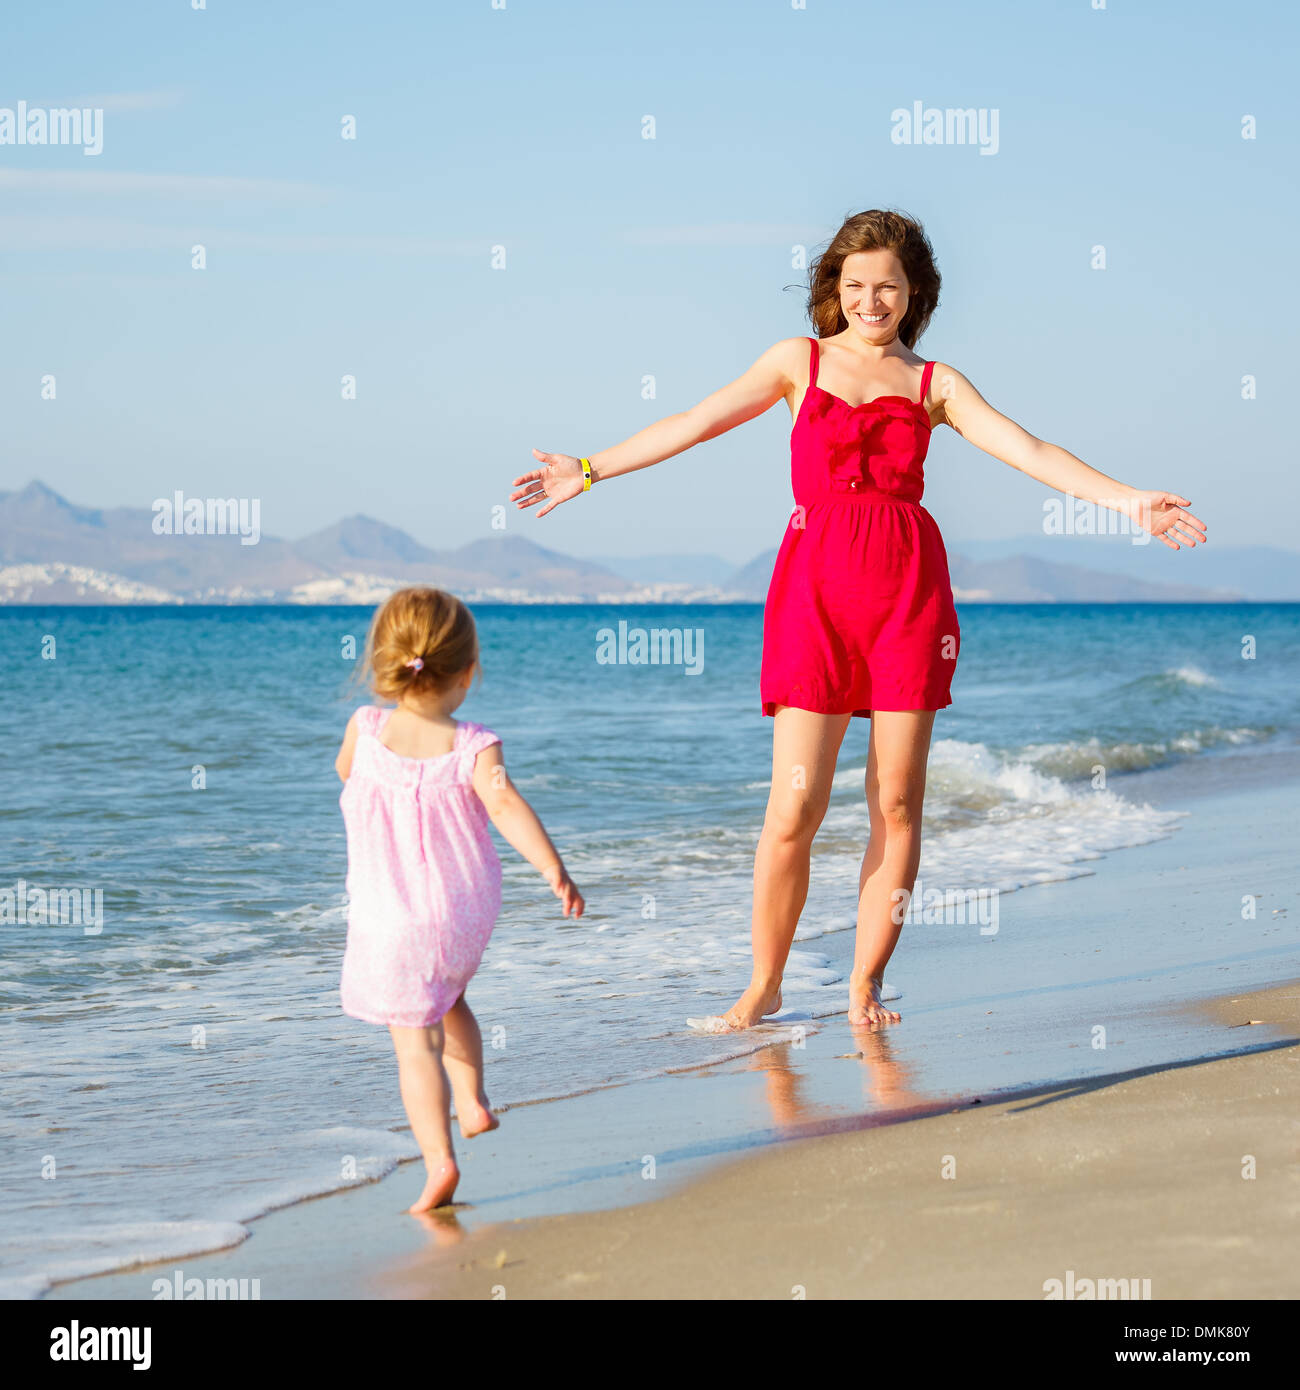 Little girl playing on the beach - Stock Image